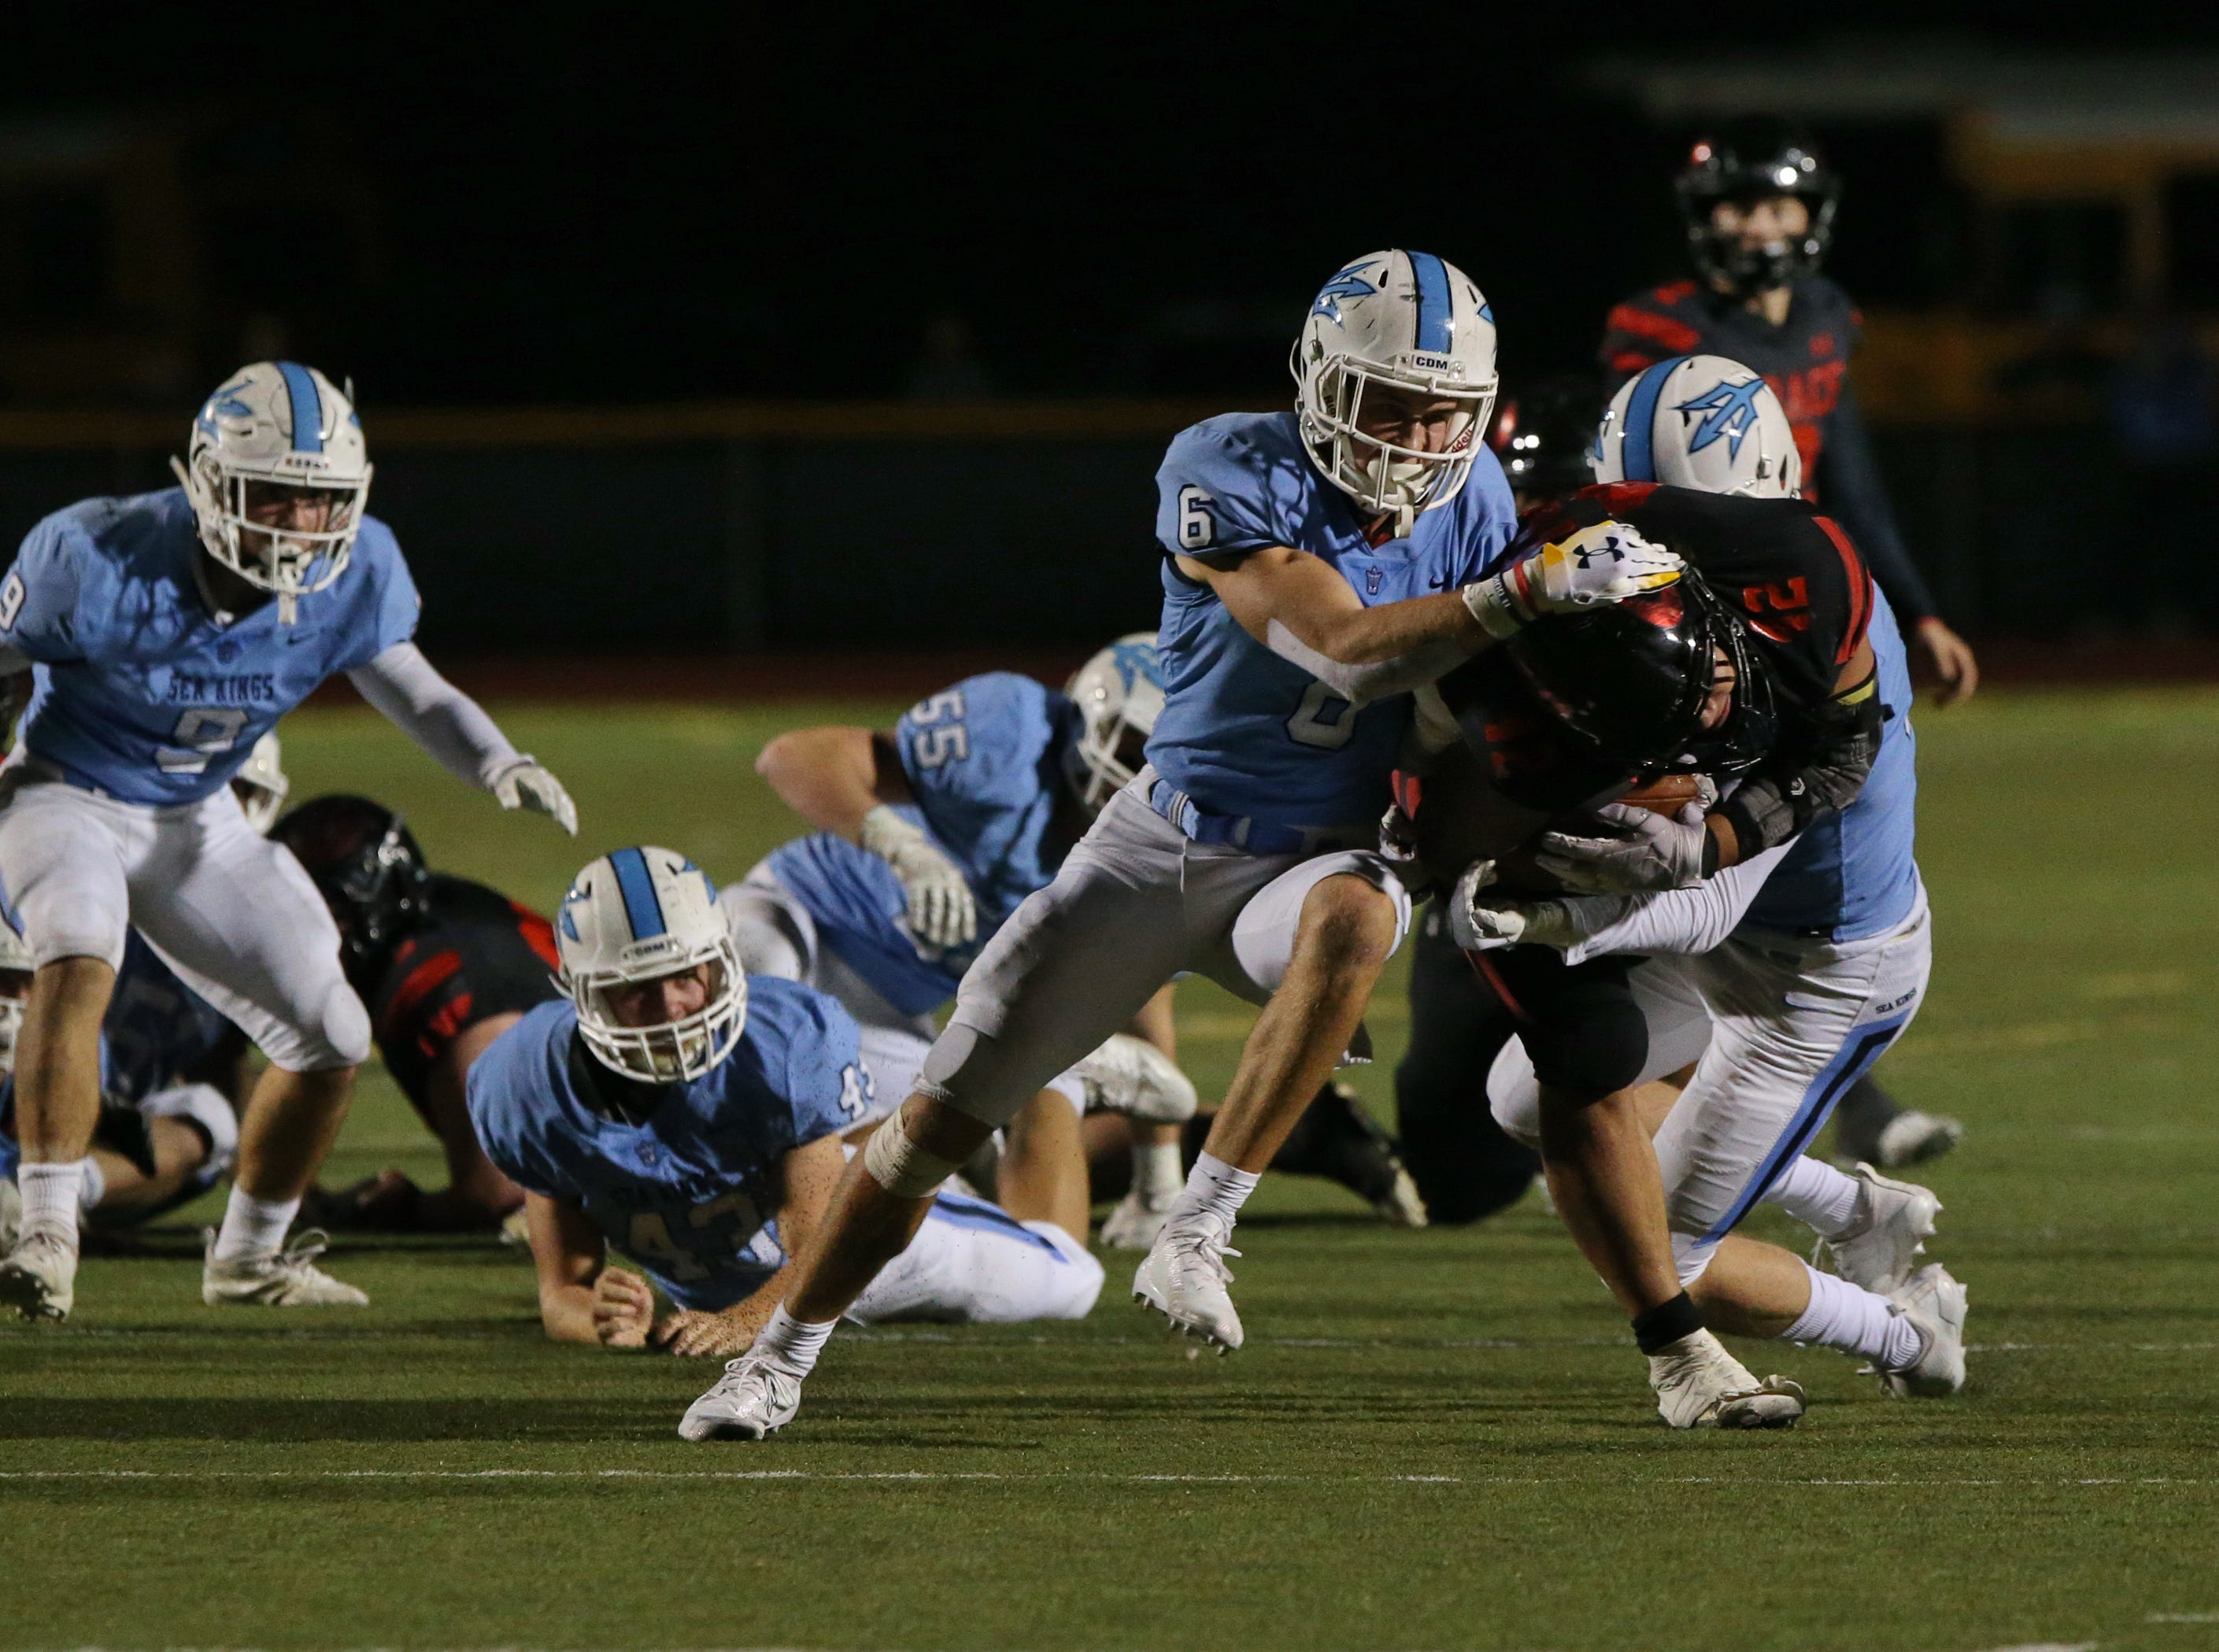 Grace Brethren's Stanley Taufoou tries to break free of Corona del Mar's John Humphreys and Jack Rottler during the Lancers' 26-14 win in the CIF-SS Division 4 championship game Saturday night at Royal High.